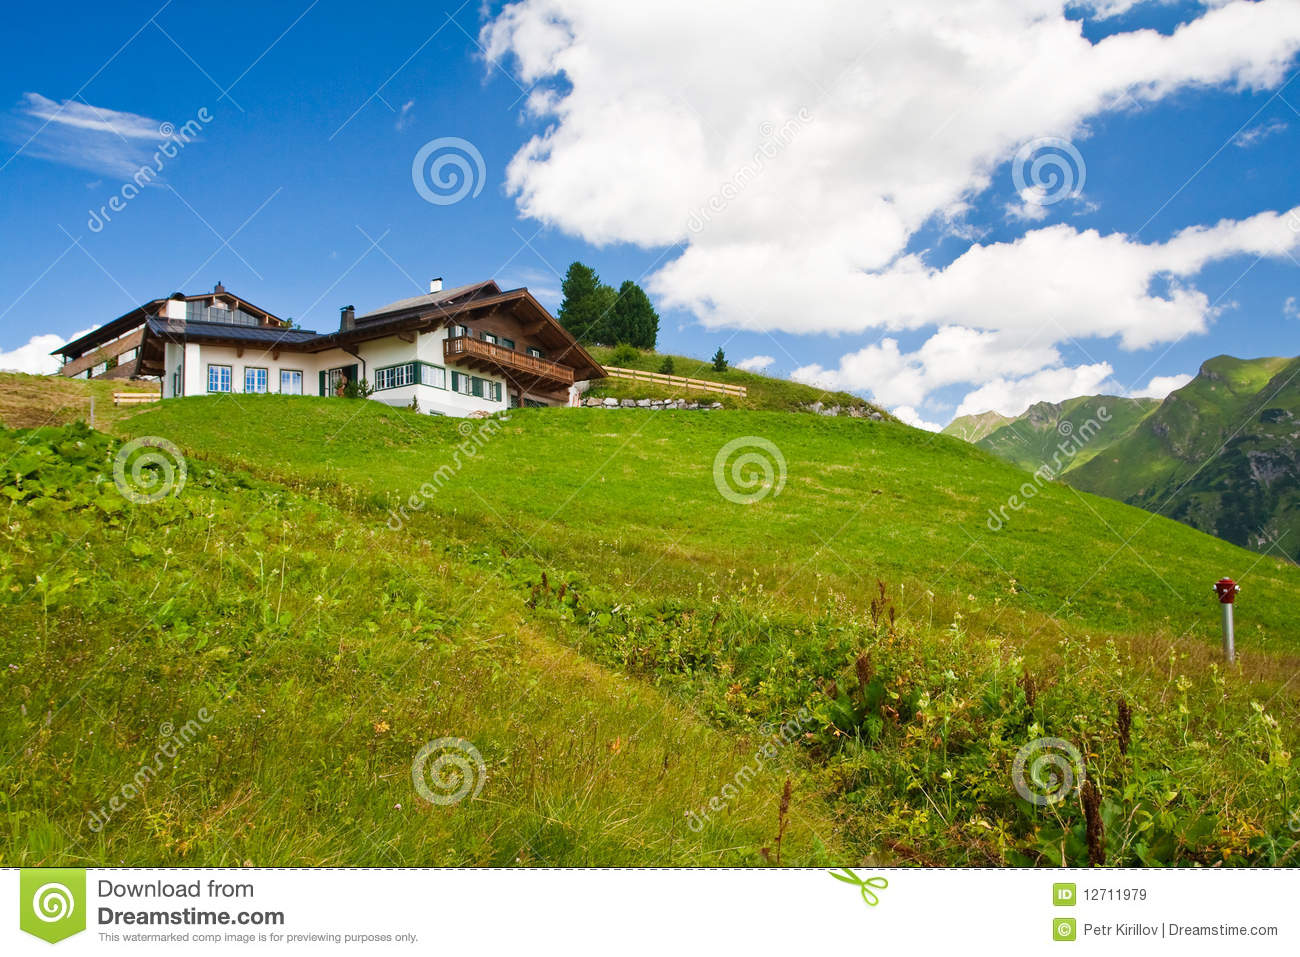 Alpine chalet in mountains. Summer time